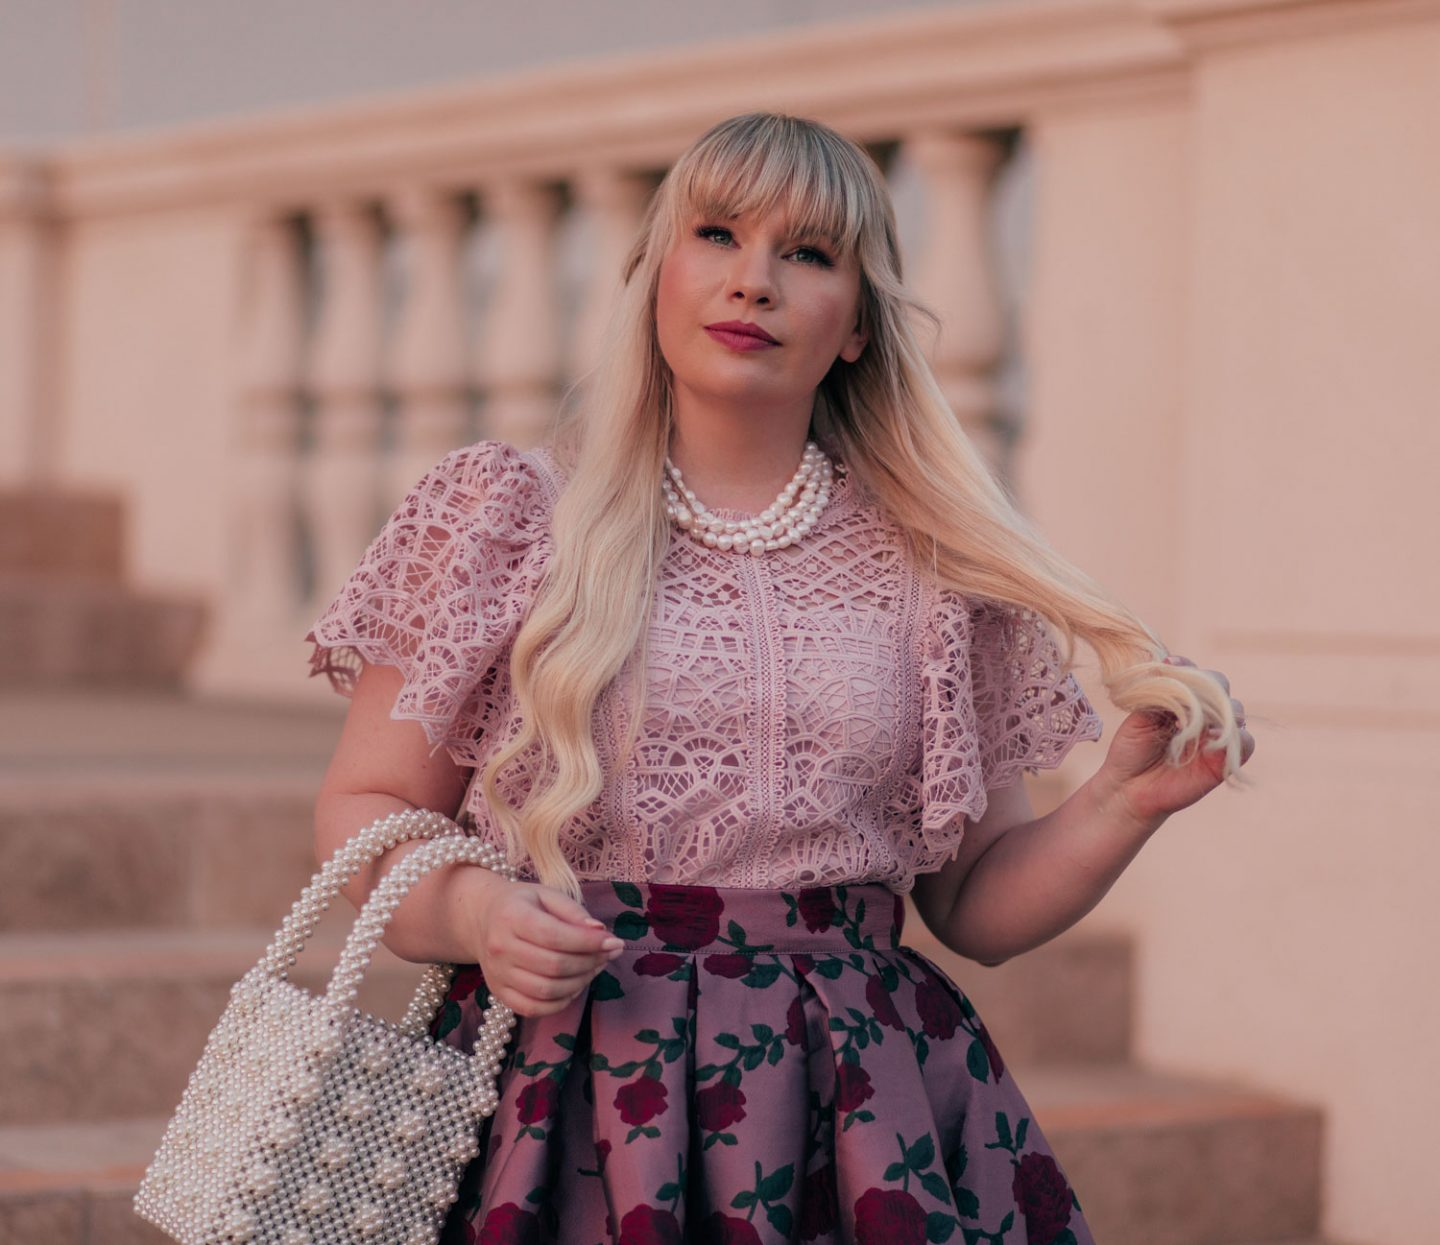 Feminine Fashion Blogger Elizabeth Hugen of Lizzie in Lace shares 5 Easy Ways to Dress More Feminine and wear a pink outfit with a lace top, pearl necklace and floral skirt